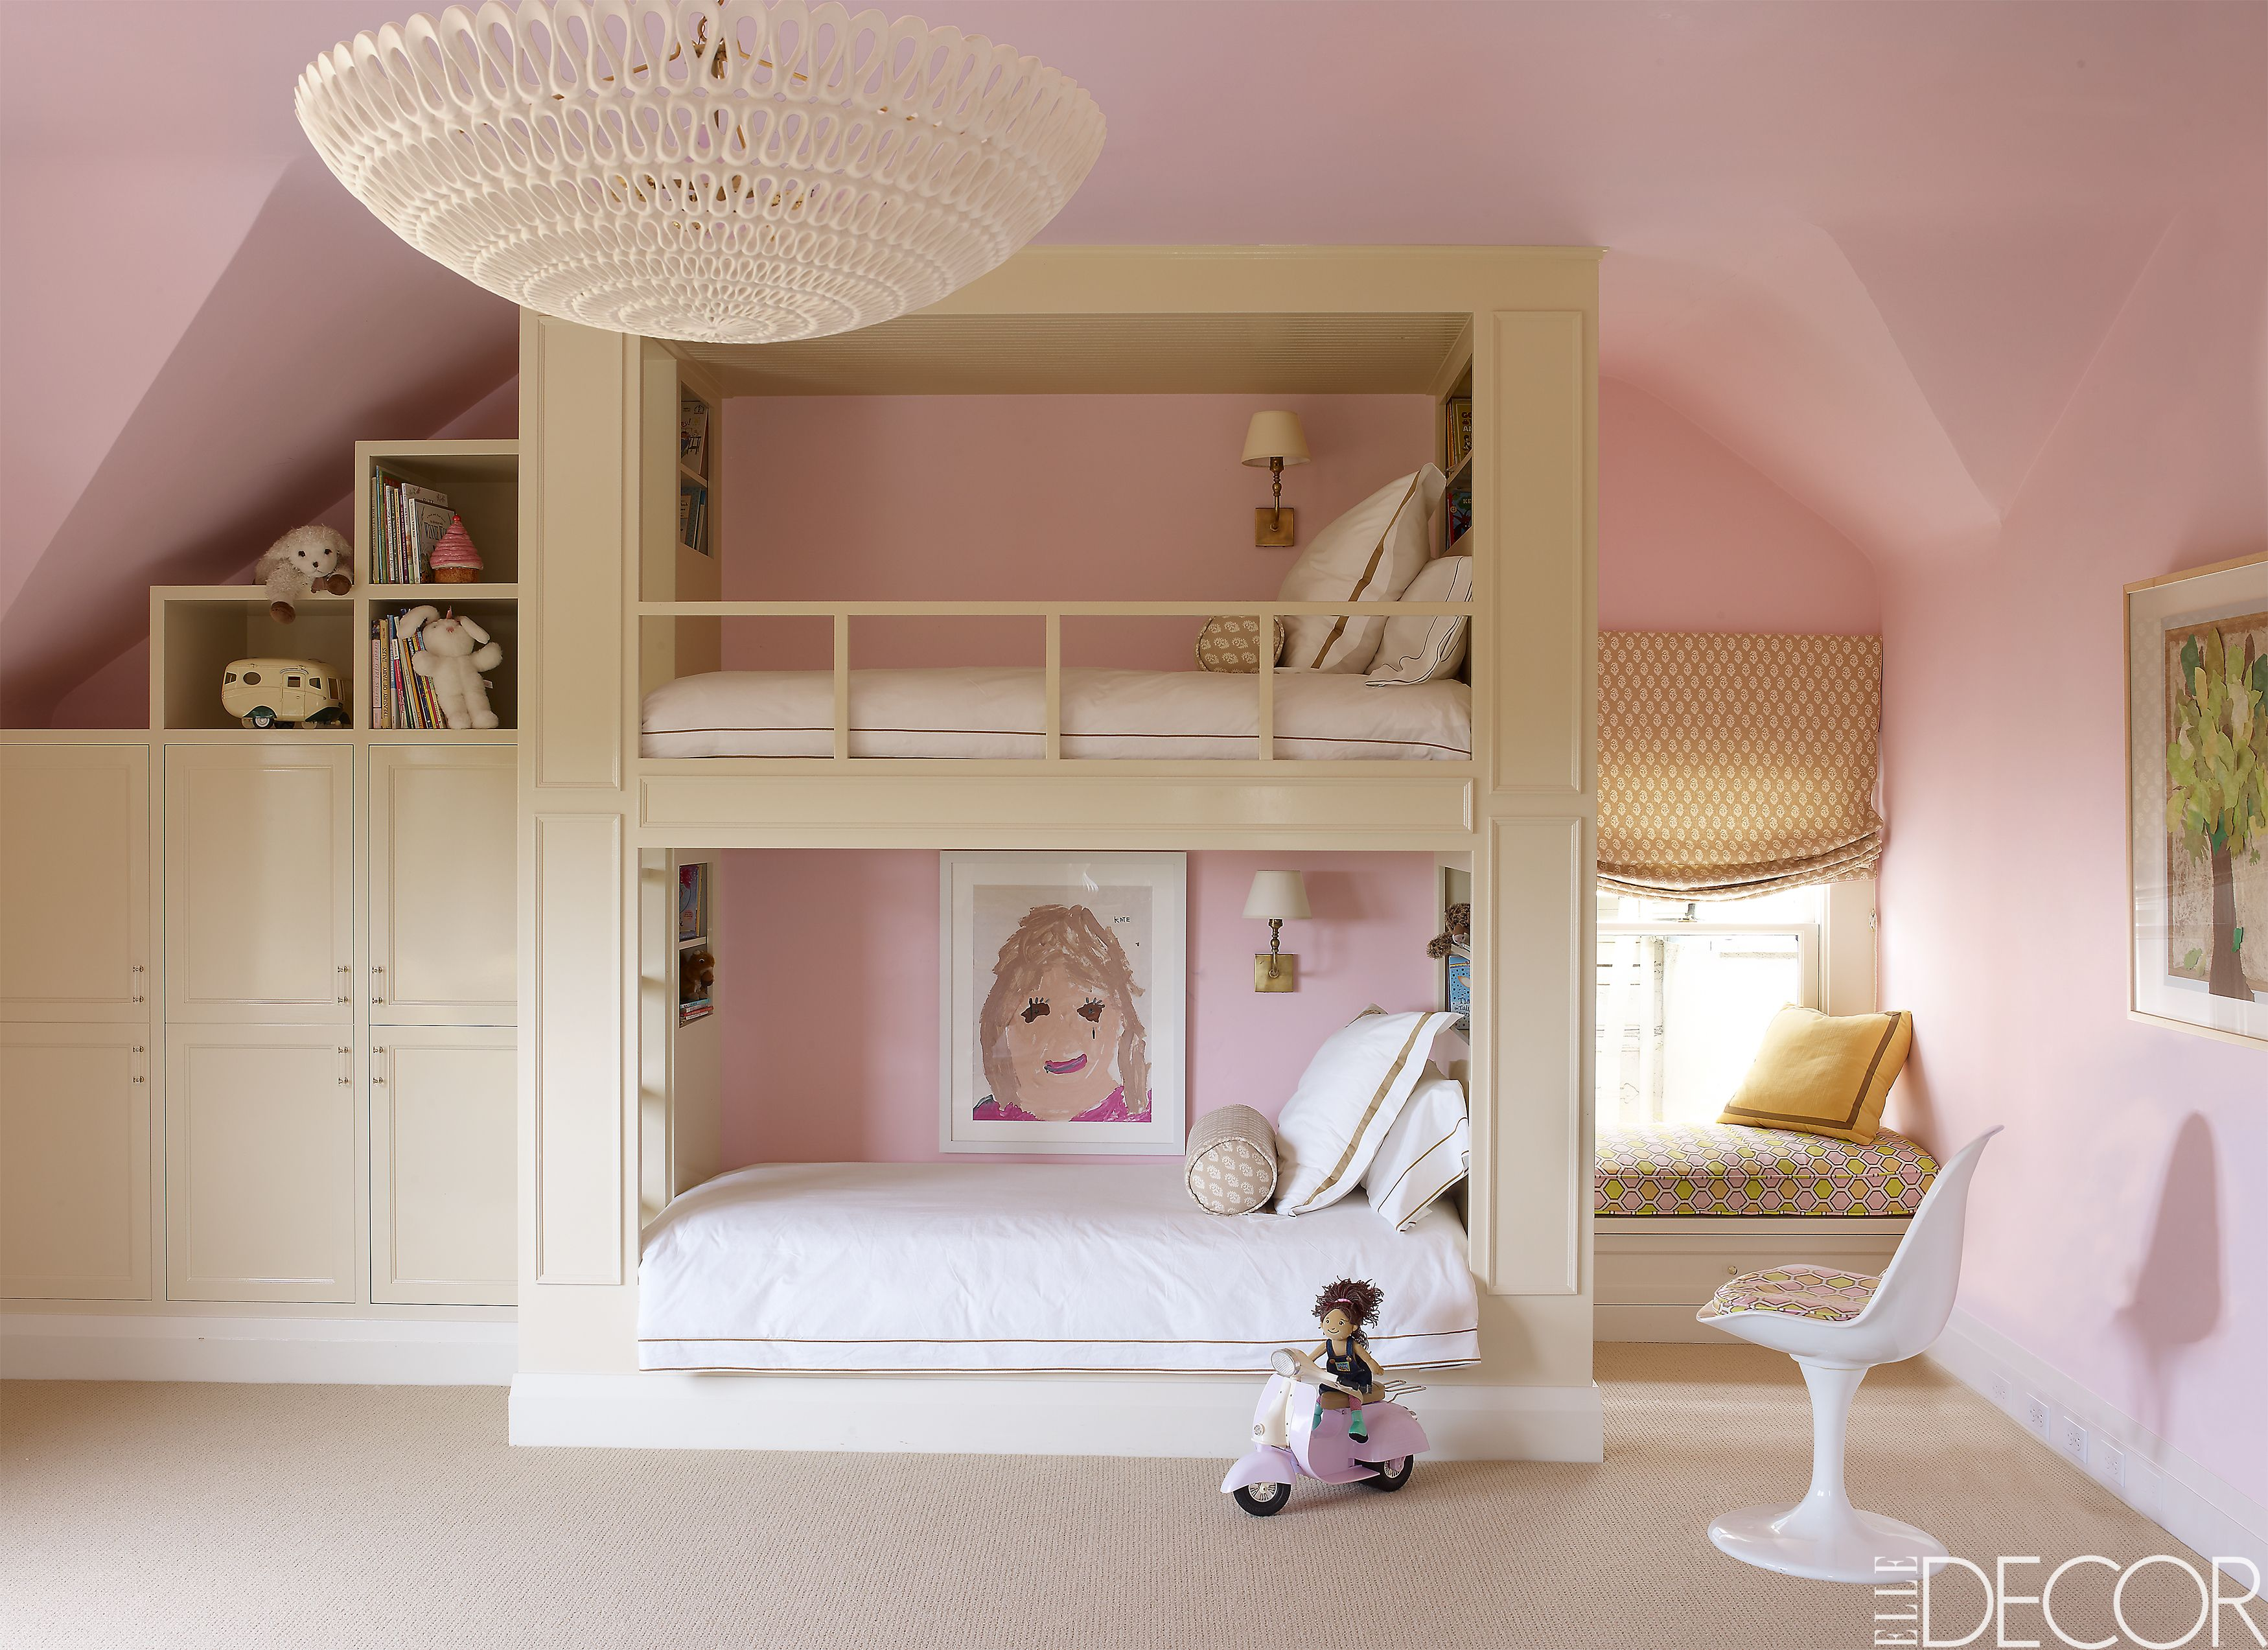 20 Creative Girls Room Ideas How To Decorate A Girl S Bedroom